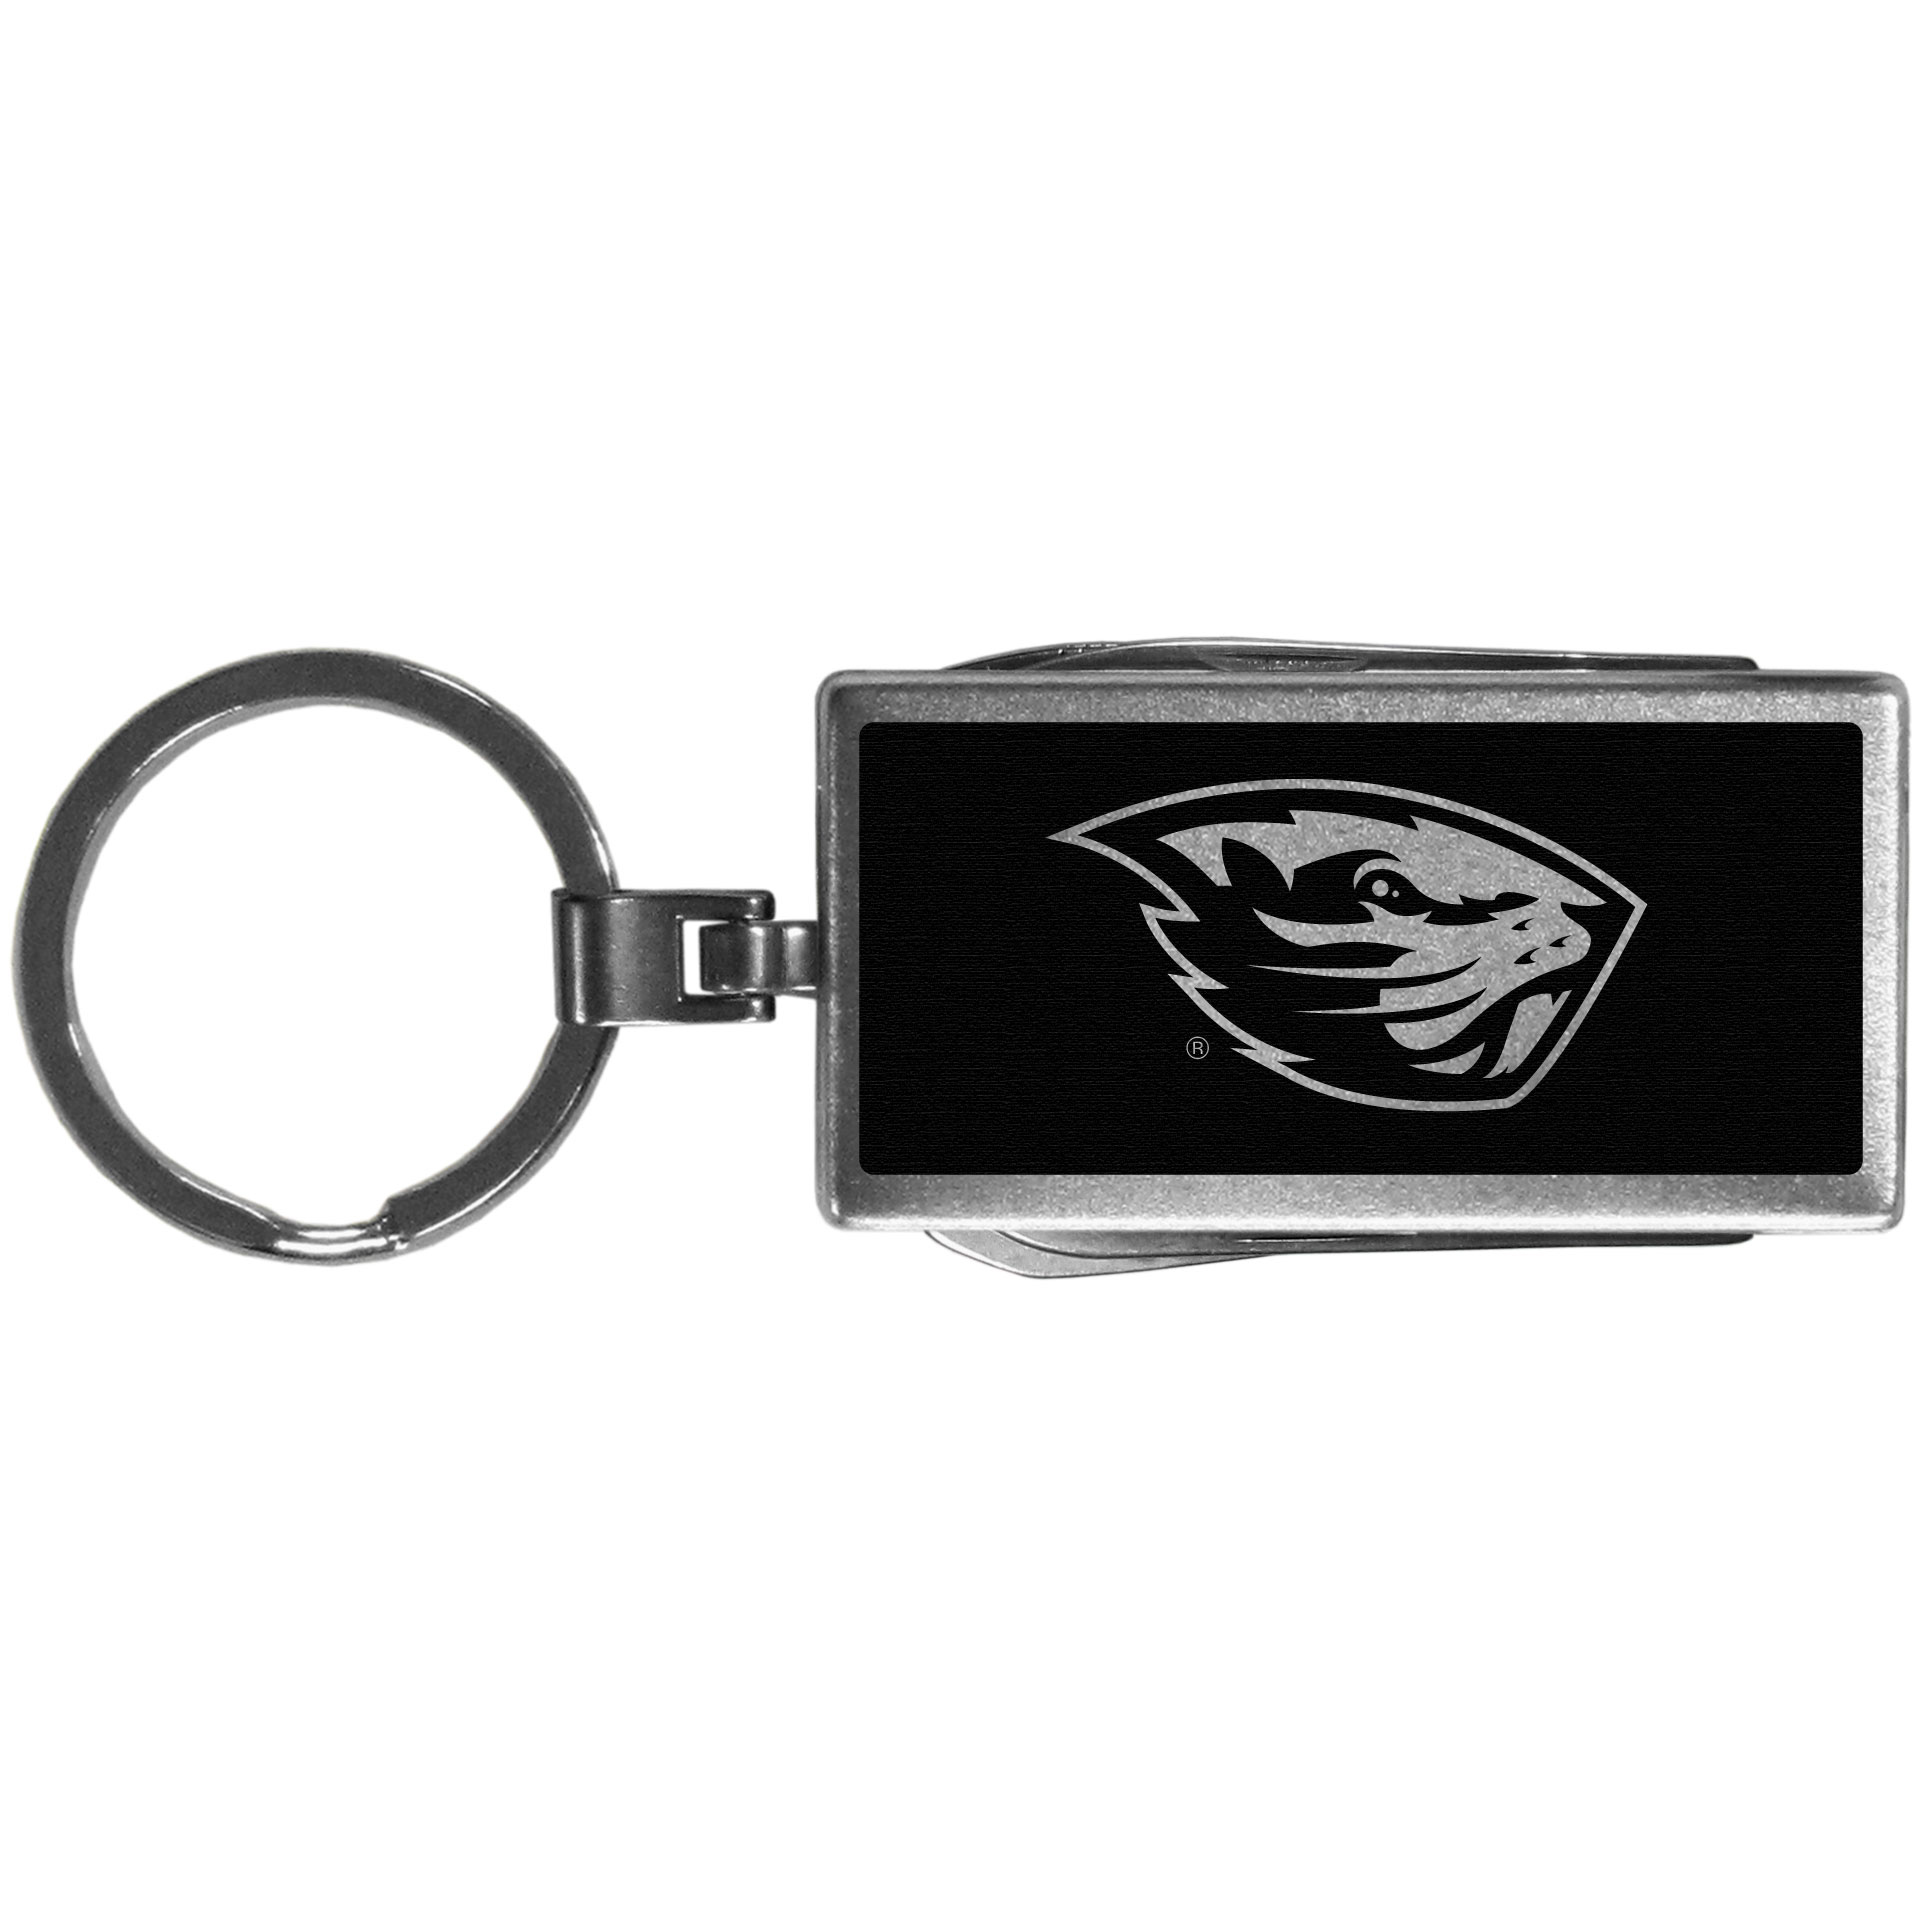 Oregon St. Beavers Multi-tool Key Chain, Black - Be the hero at the tailgate, camping, or on a Friday night with your Oregon St. Beavers Multi-Tool Keychain which comes complete with bottle opener, scissors, knife, nail file and screw driver. Be it opening a package or a beverage Siskiyou's Multi-Tool Keychain goes wherever your keys do. The keychain hangs at 4 inches long when closed.